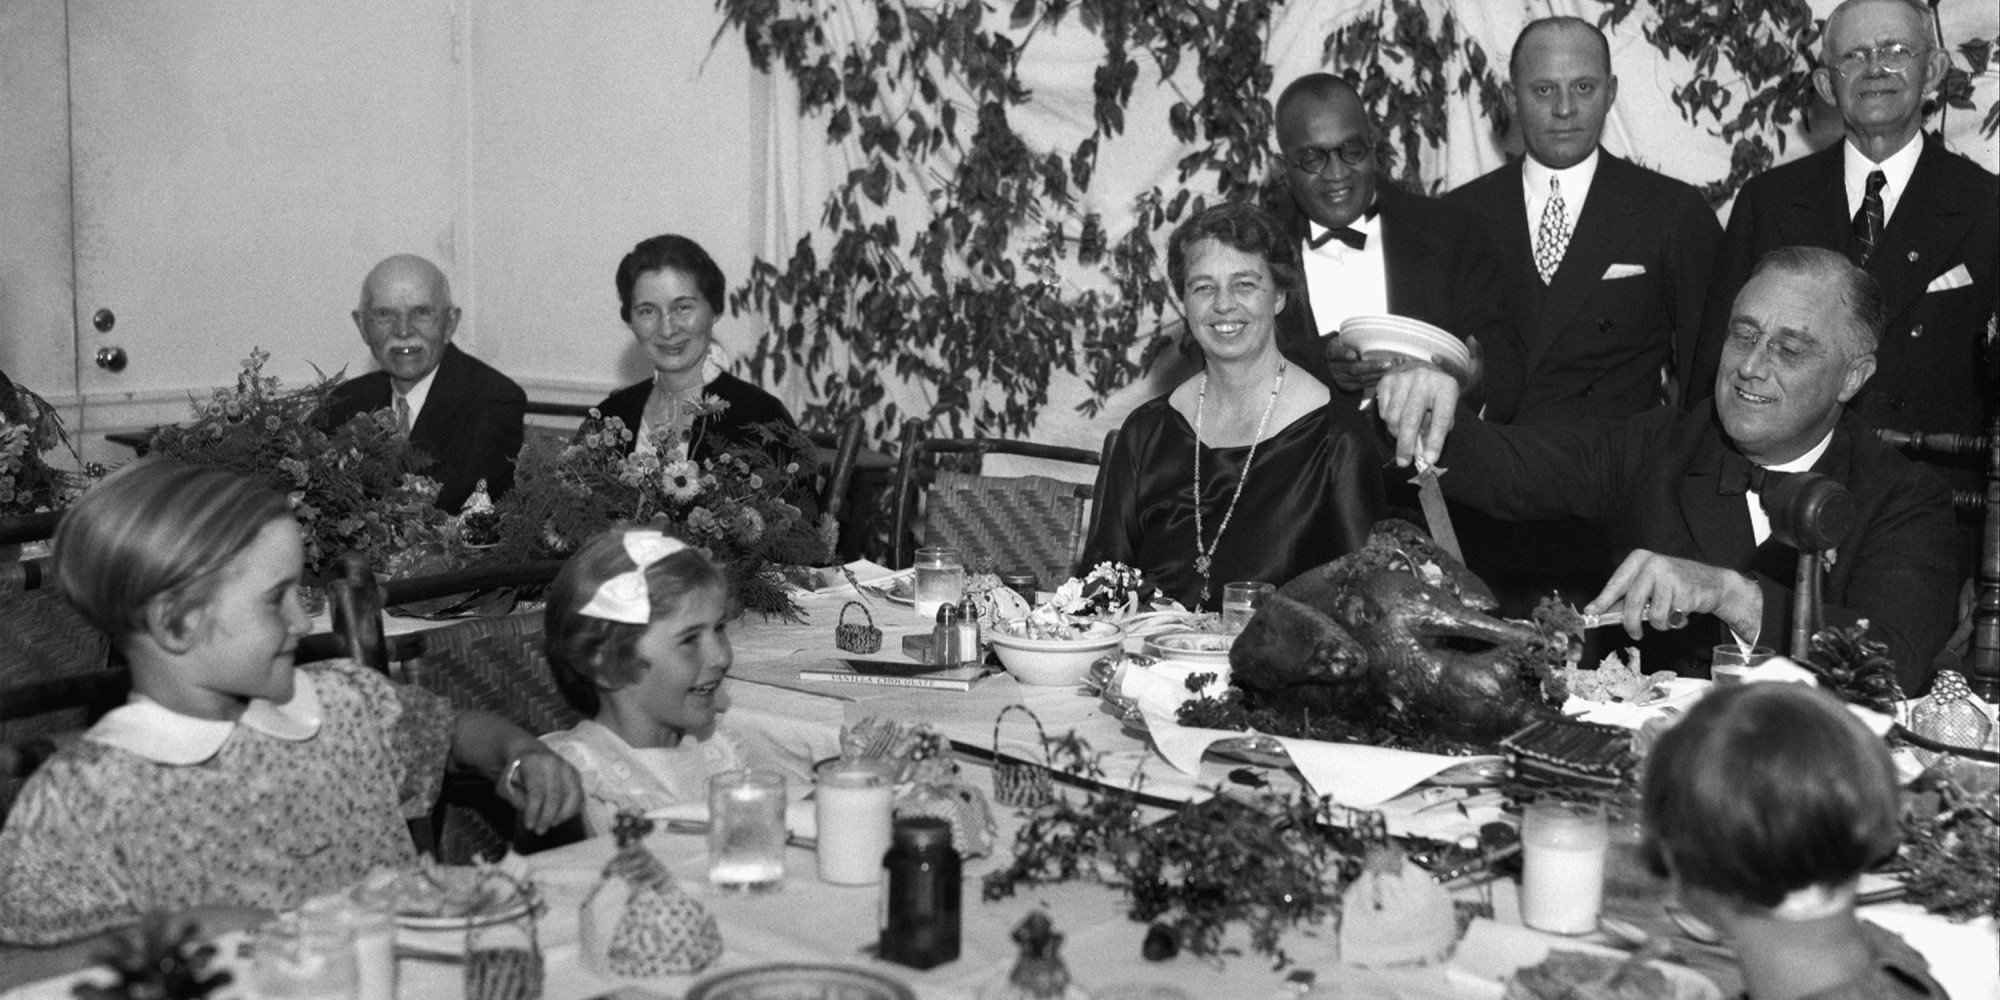 President Franklin D. Roosevelt, accompanied by Eleanor Roosevelt, carves the 1933 Thanksgiving Day turkey with fellow polio patients in the Georgia Hall Dining Room.